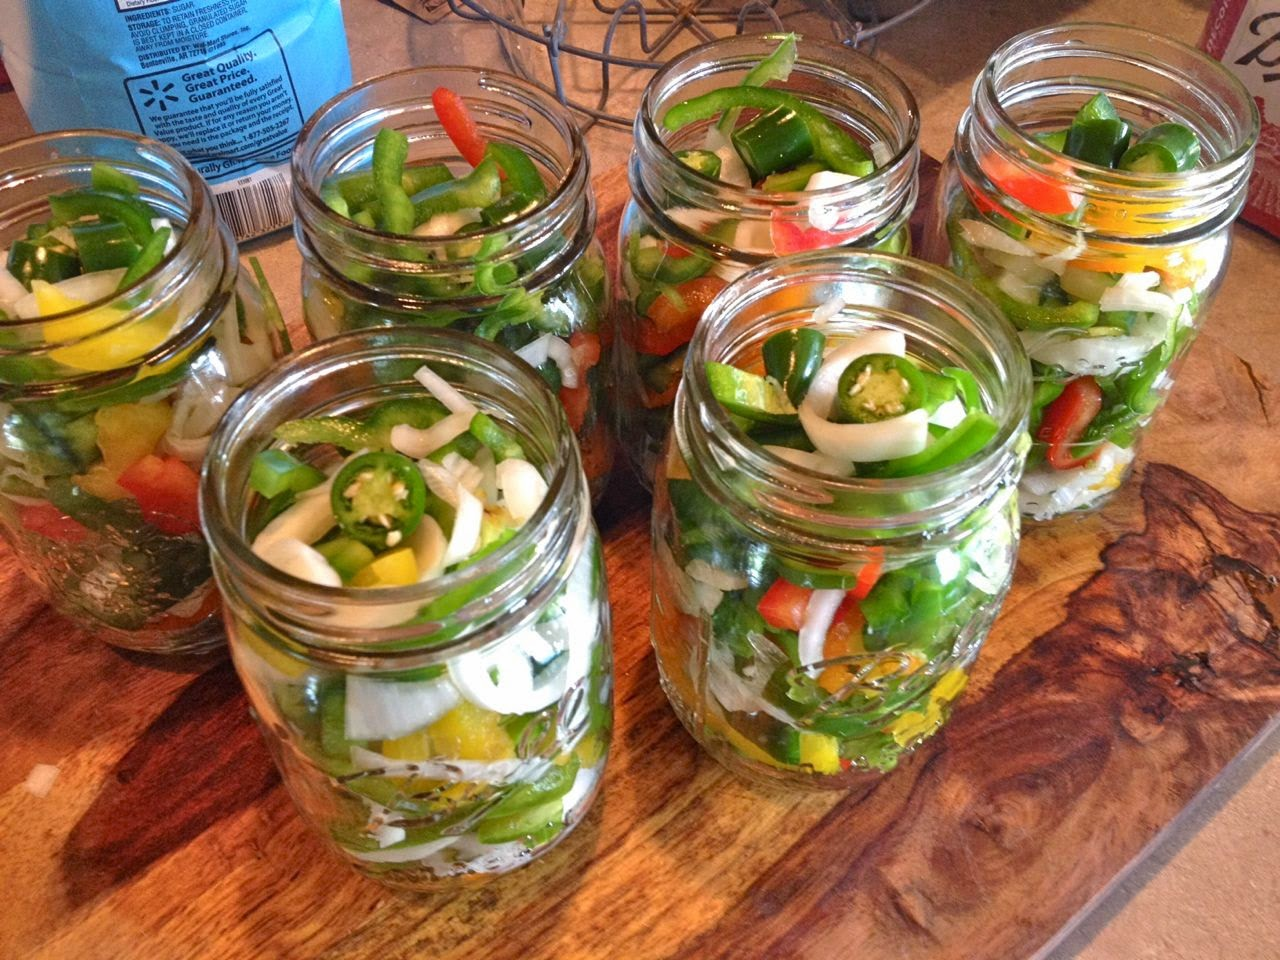 ... stuffed all the peppers and onions into the jars, leaving the